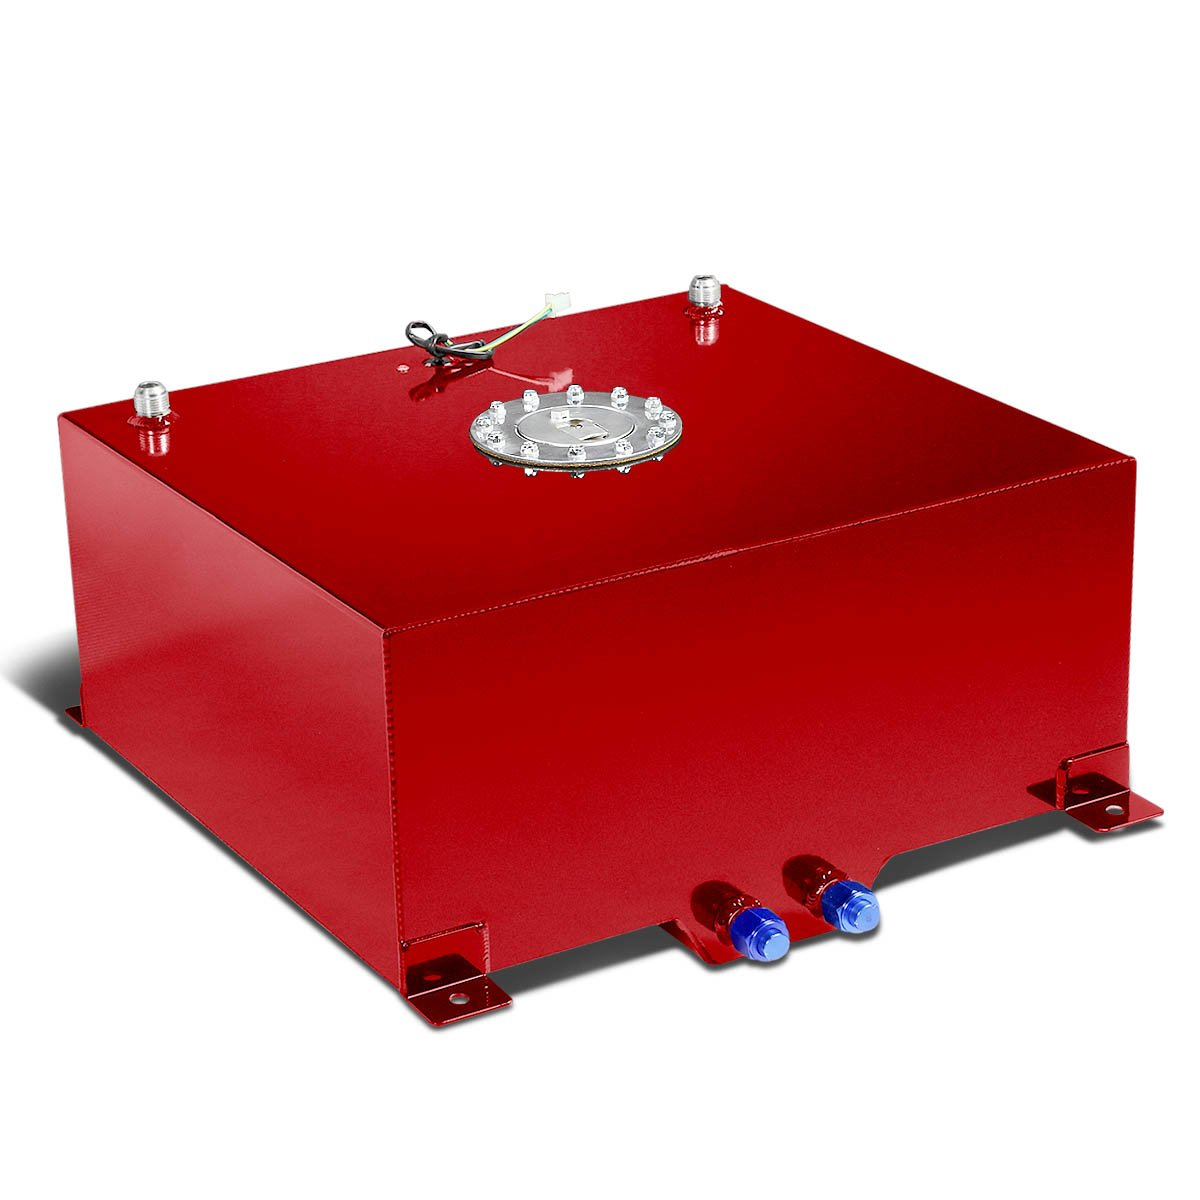 20-Gallon Aluminum Street/Drift/Strip/Racing Fuel Cell Red Gas Tank with Level Sender and Silver Cap